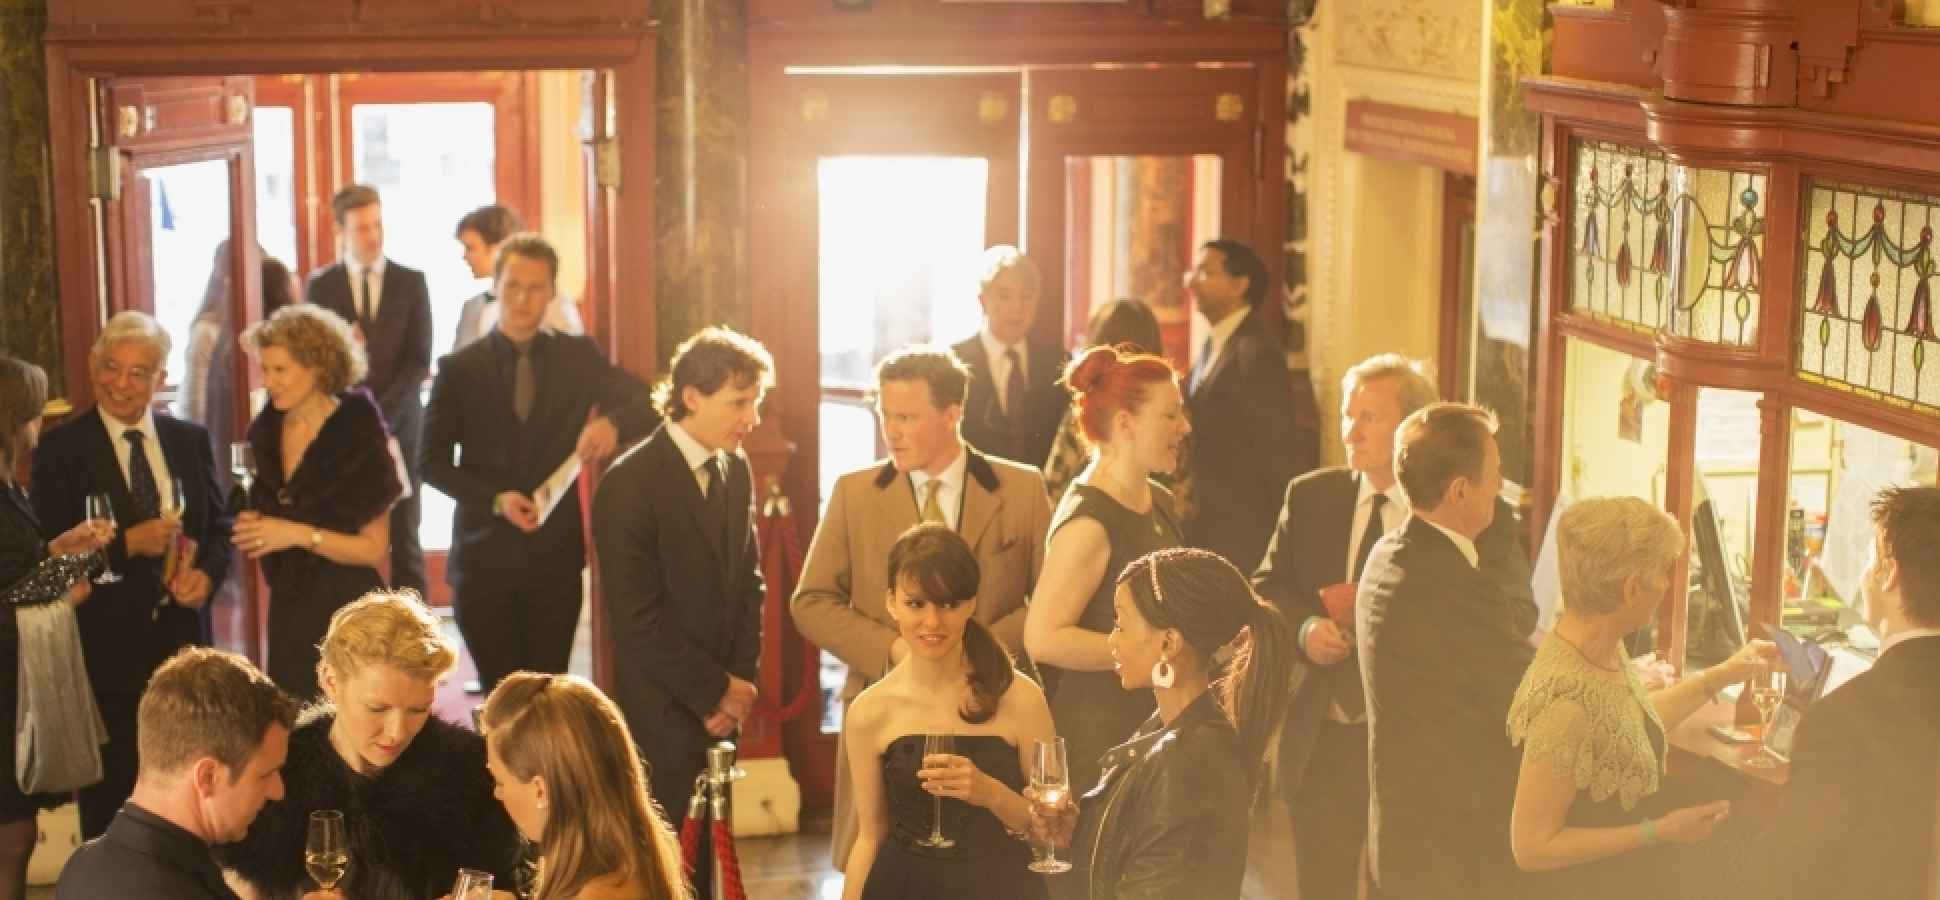 4 Tips for Hosting a Champagne Event on a Beer Budget